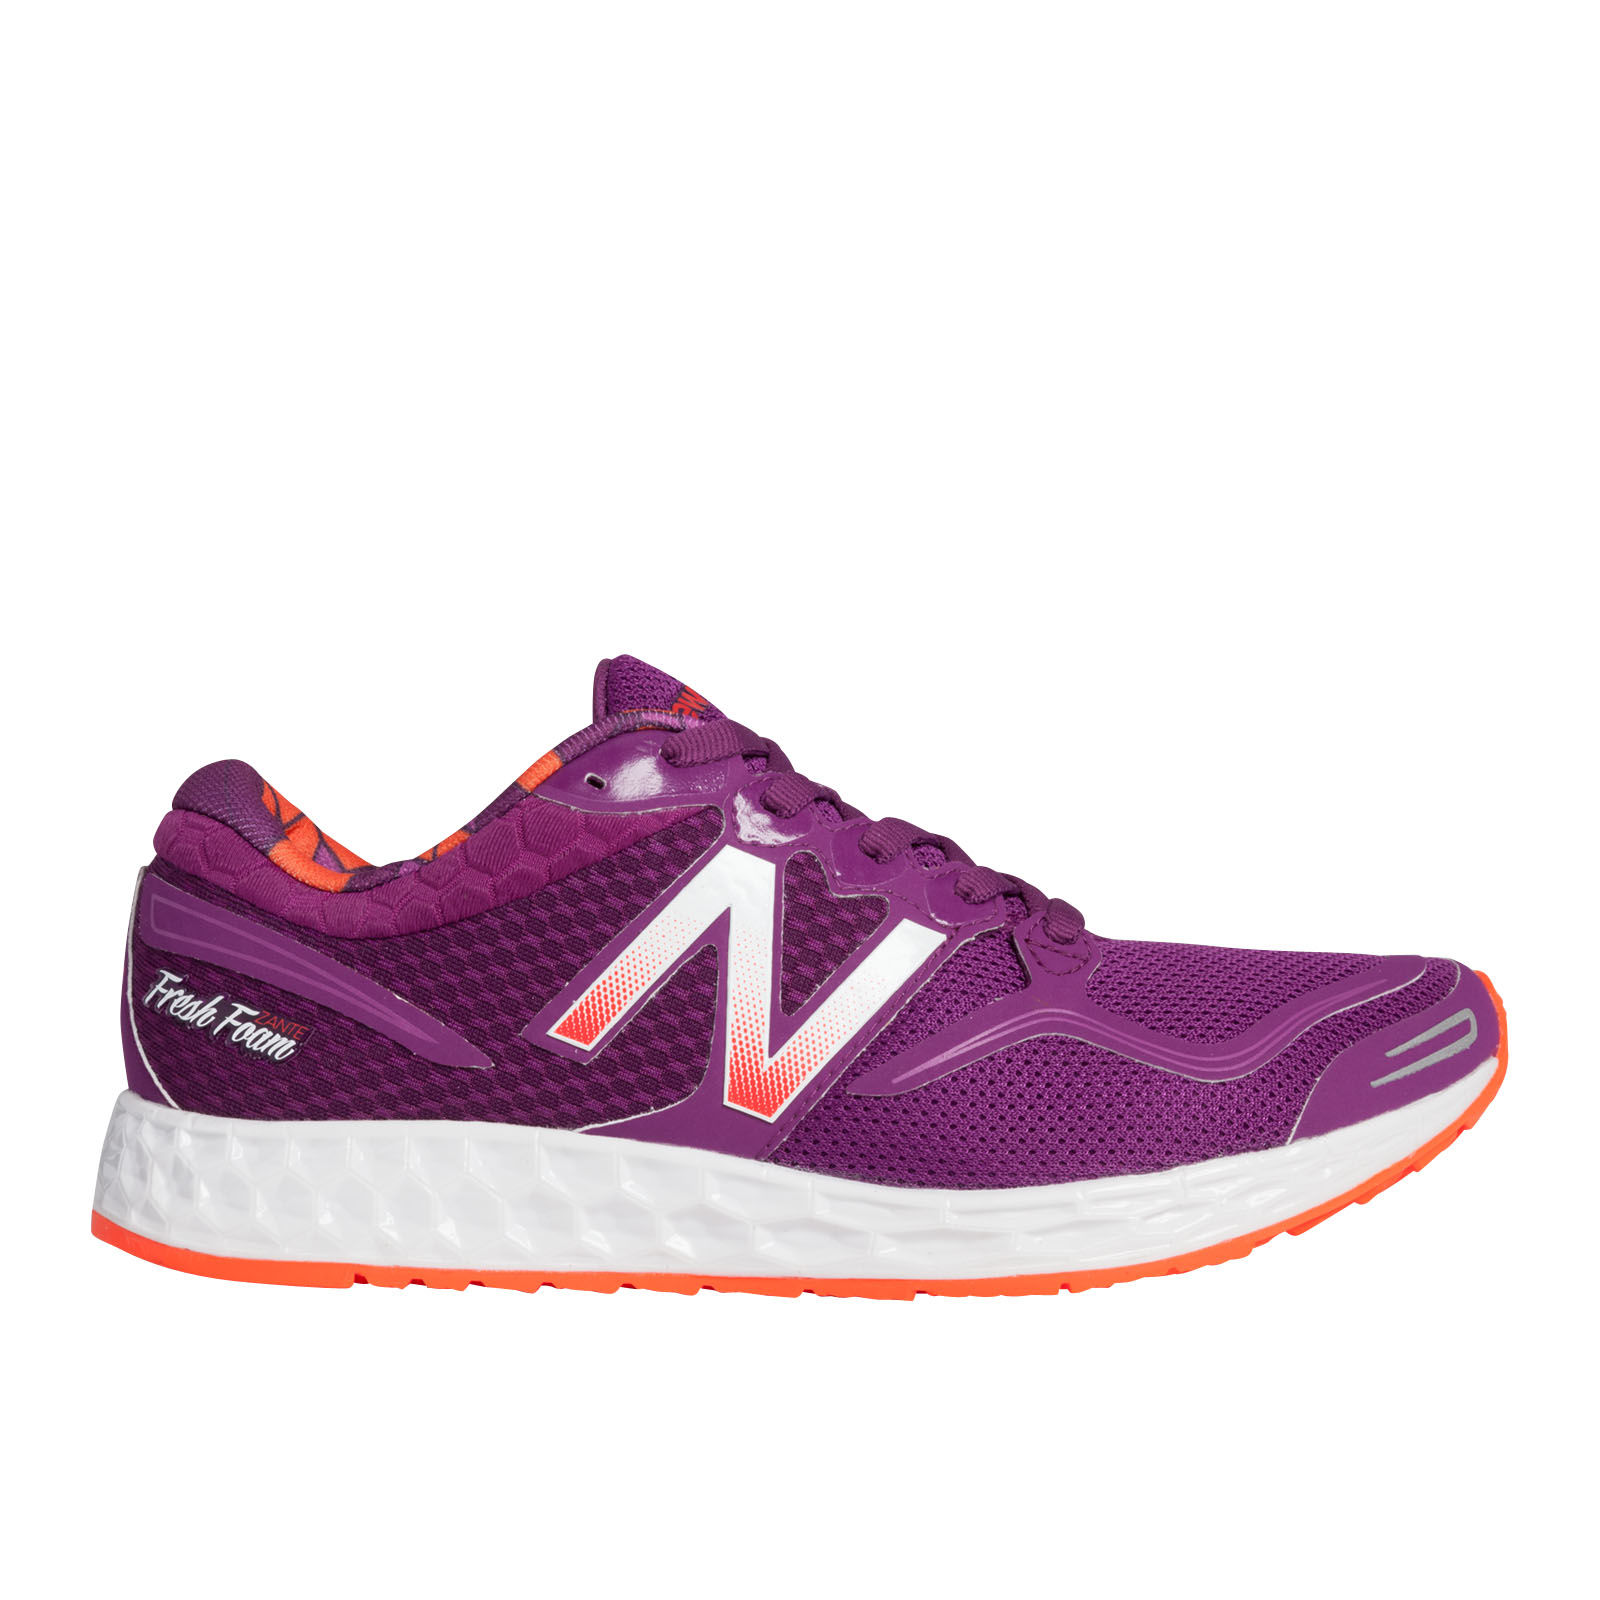 New Balance Lady Zante in Pigment